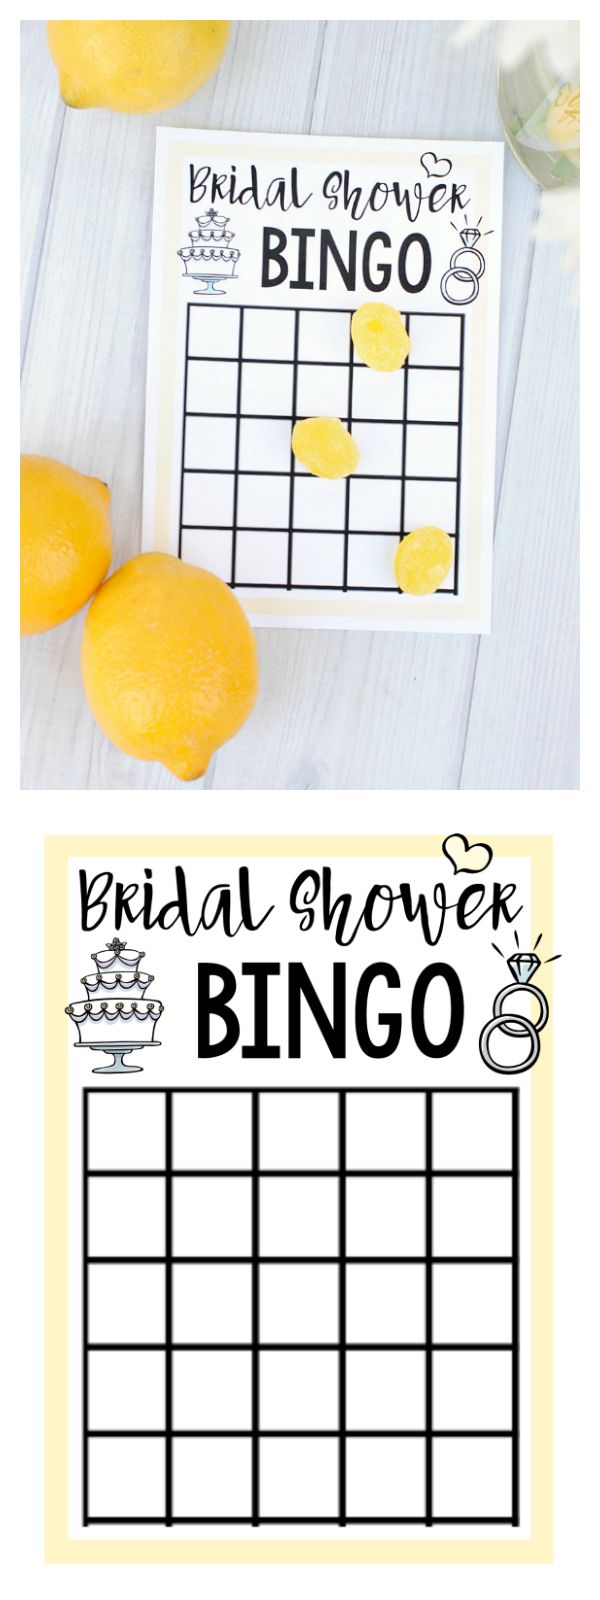 Free Printable Bridal Shower Bingo Game